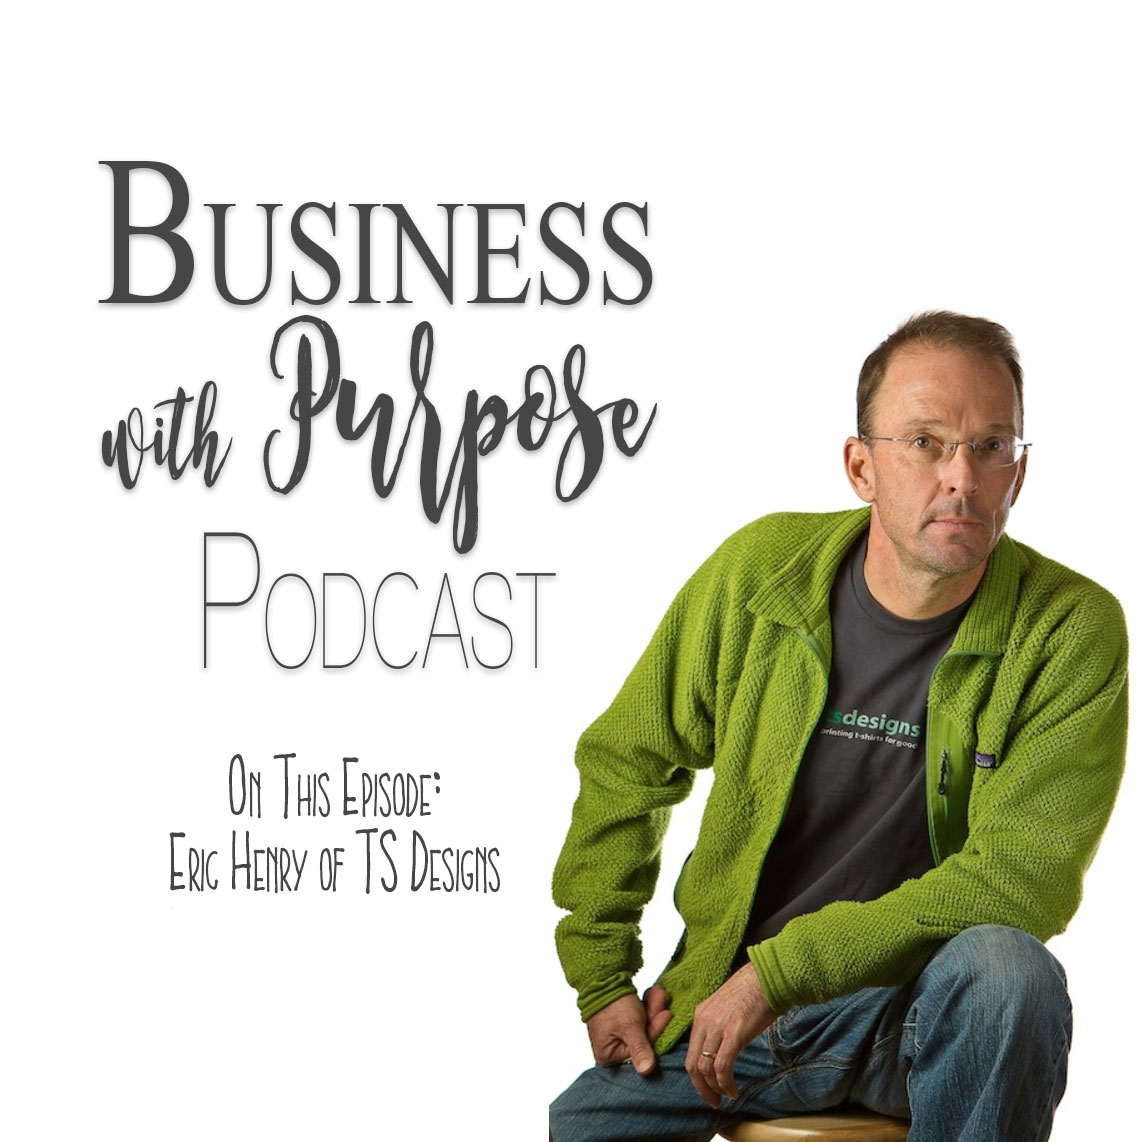 EP 15: Eric Henry - TS Designs